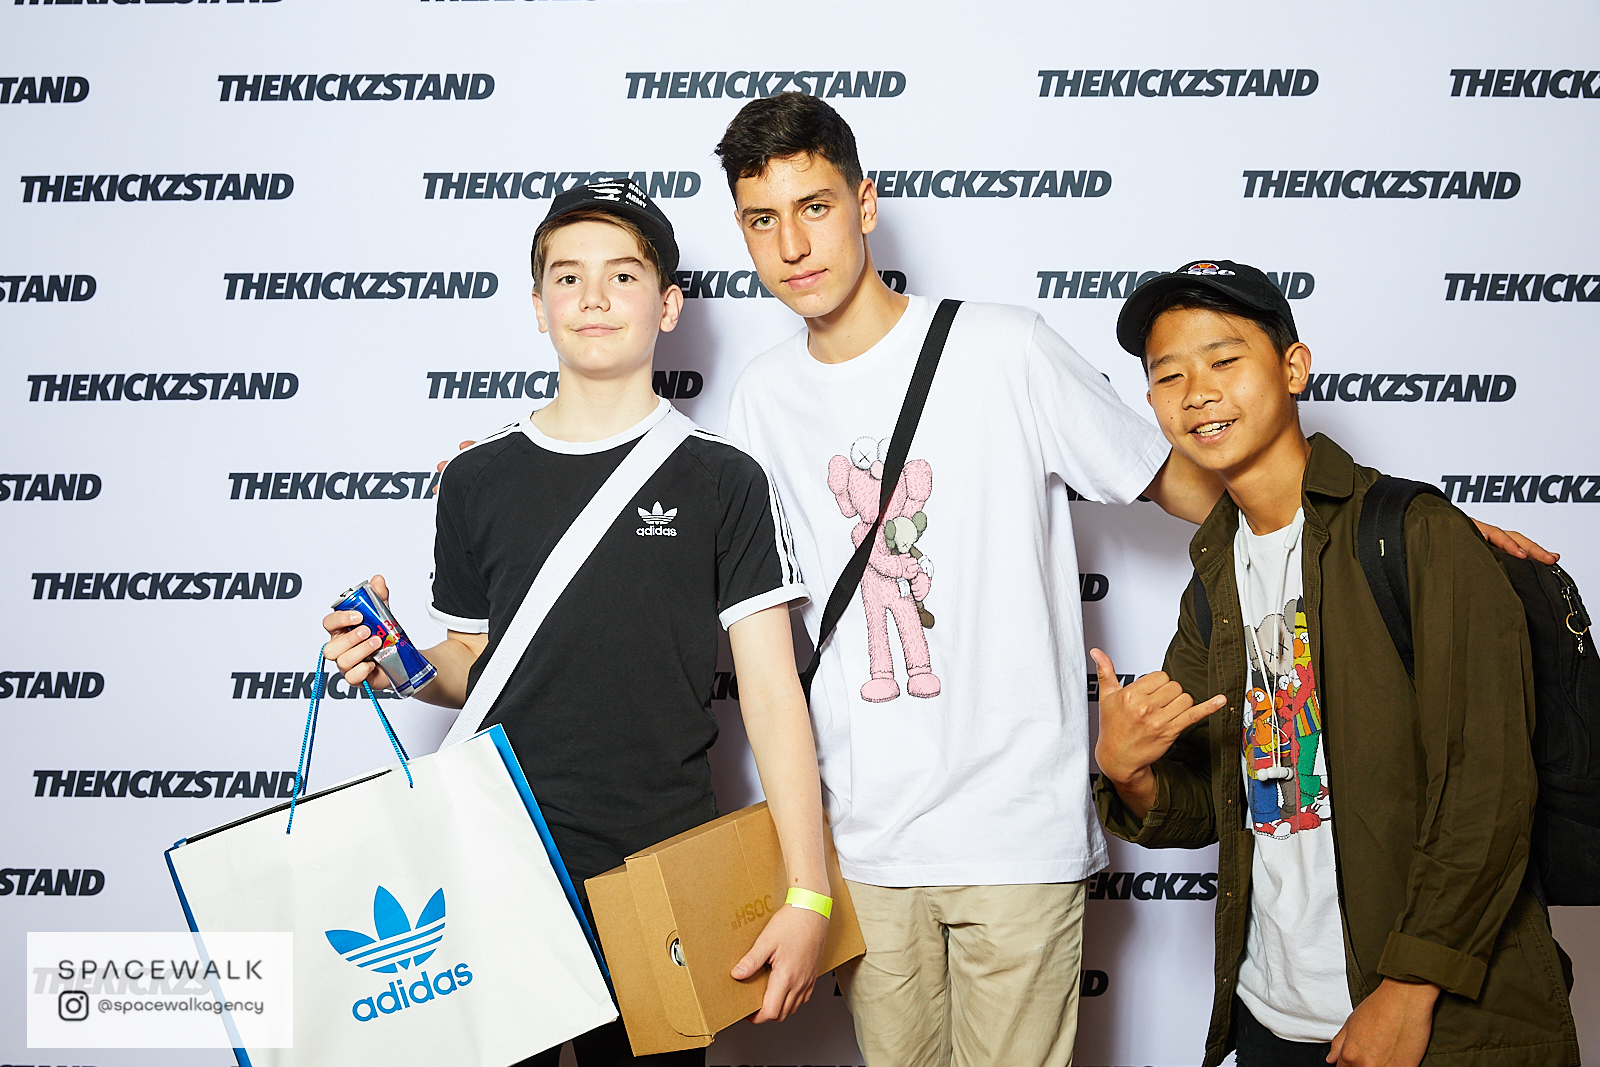 KICKZSTAND_BOOTH_053